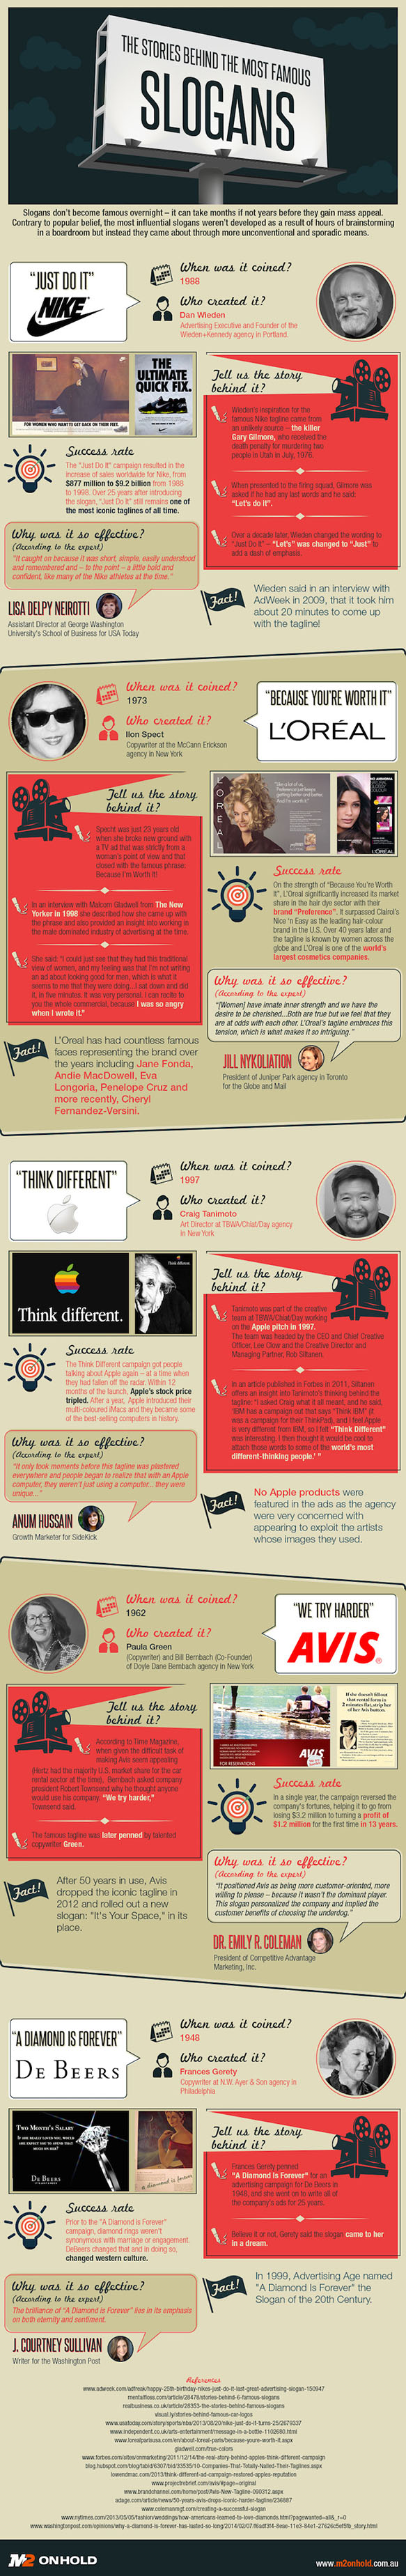 stories-behind-the-slogans-Infographic